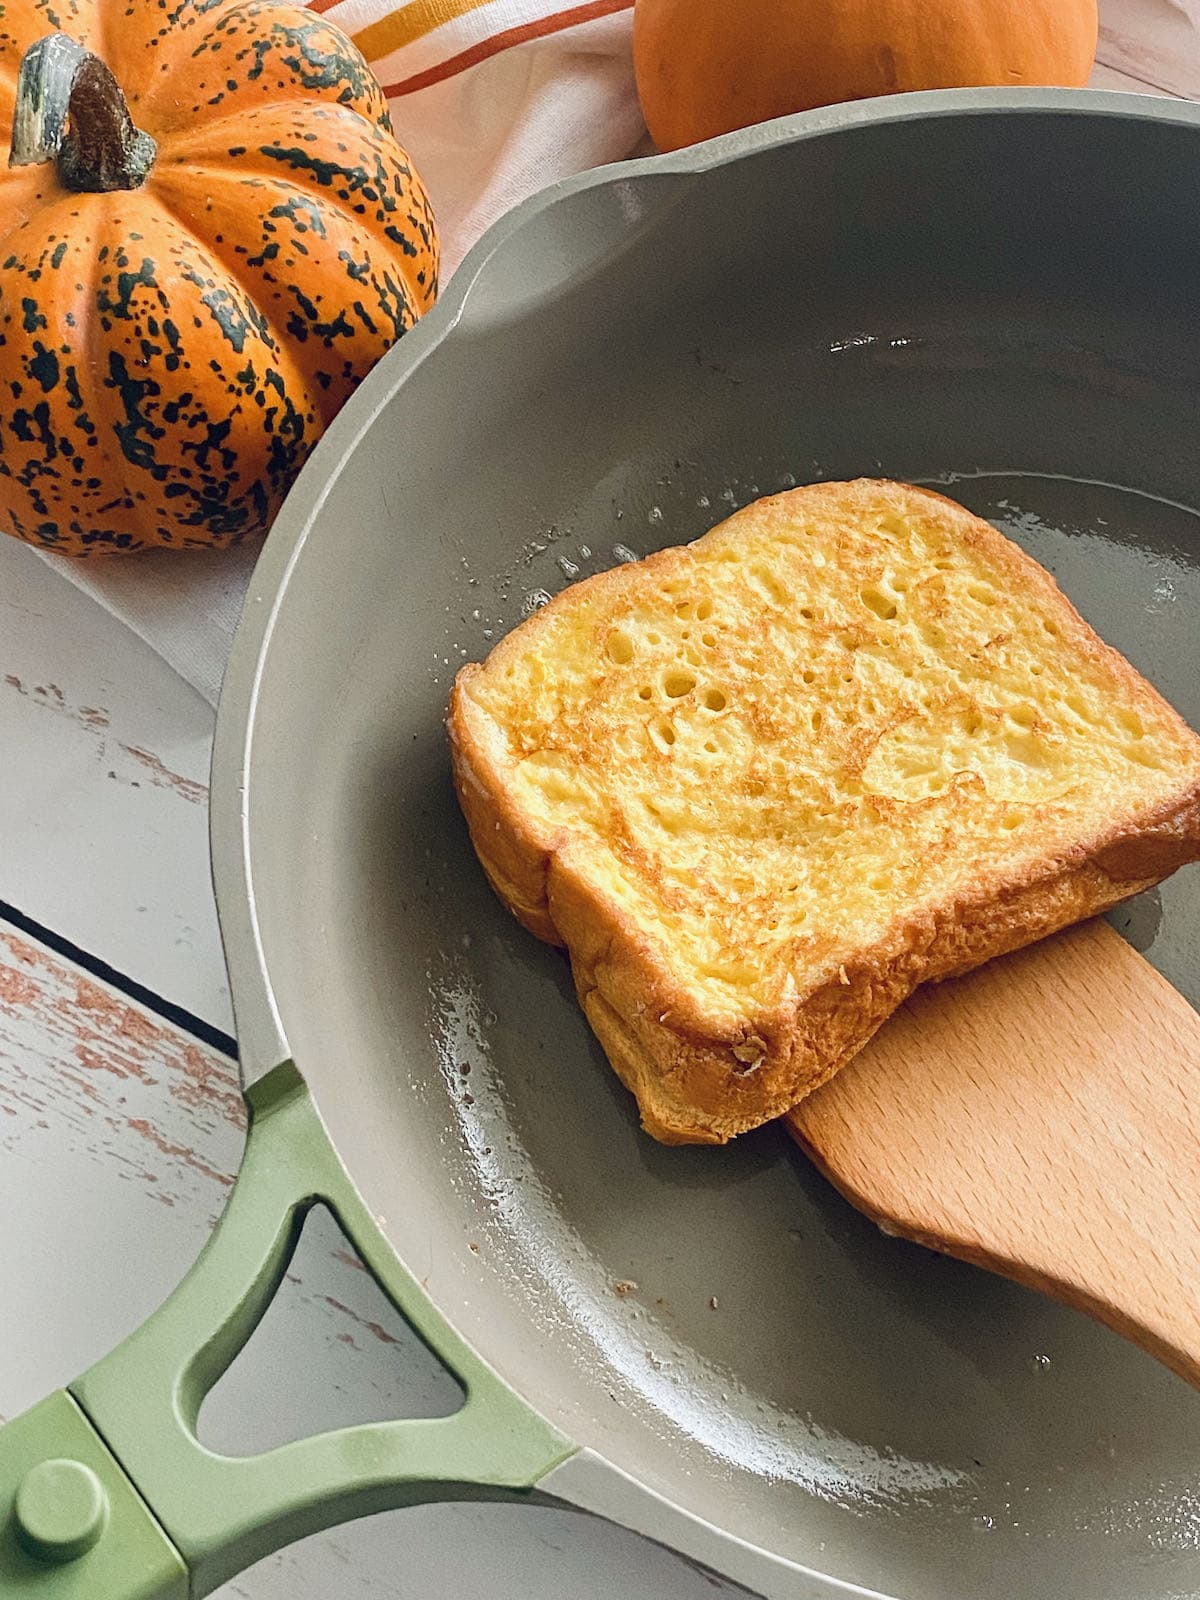 french toast being fried in a skillet.